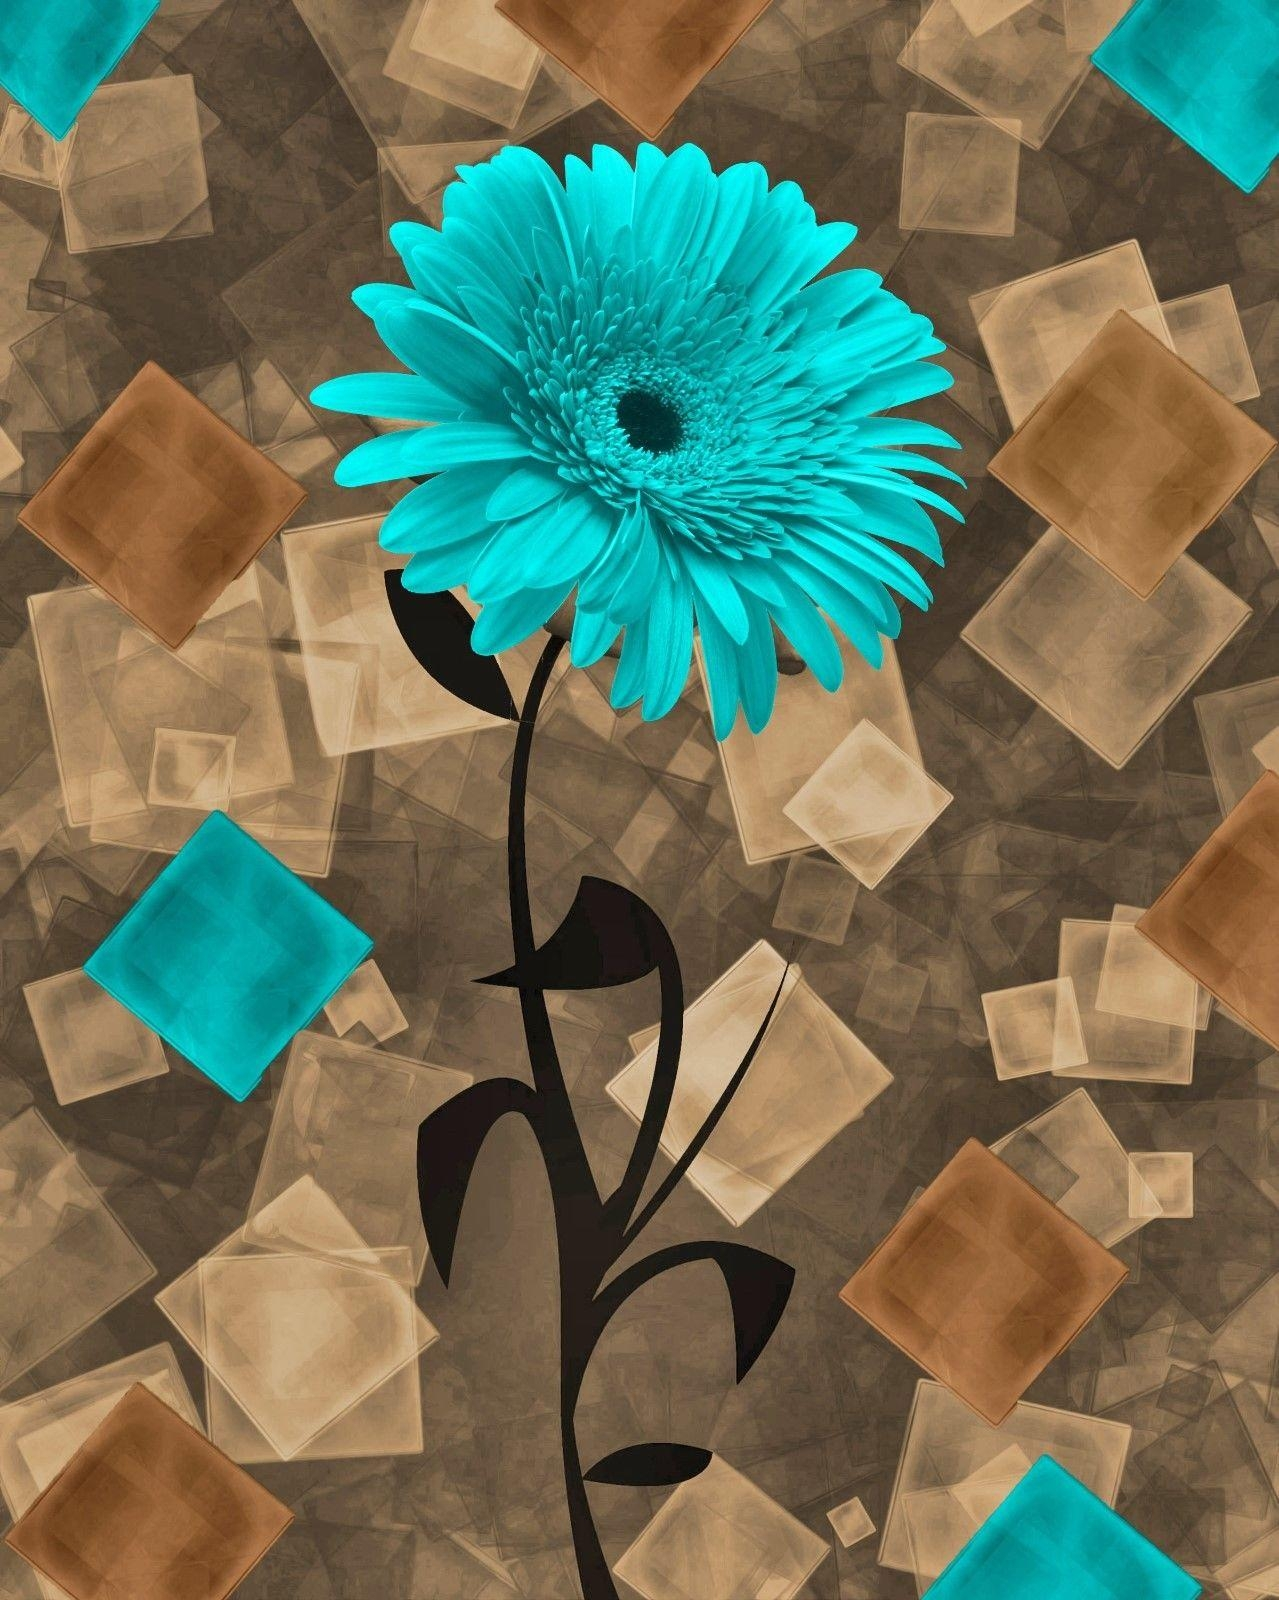 Teal Brown Daisy Flower Modern Bathroom Bedroom Home Decor Wall Regarding Brown And Turquoise Wall Art (Image 13 of 20)